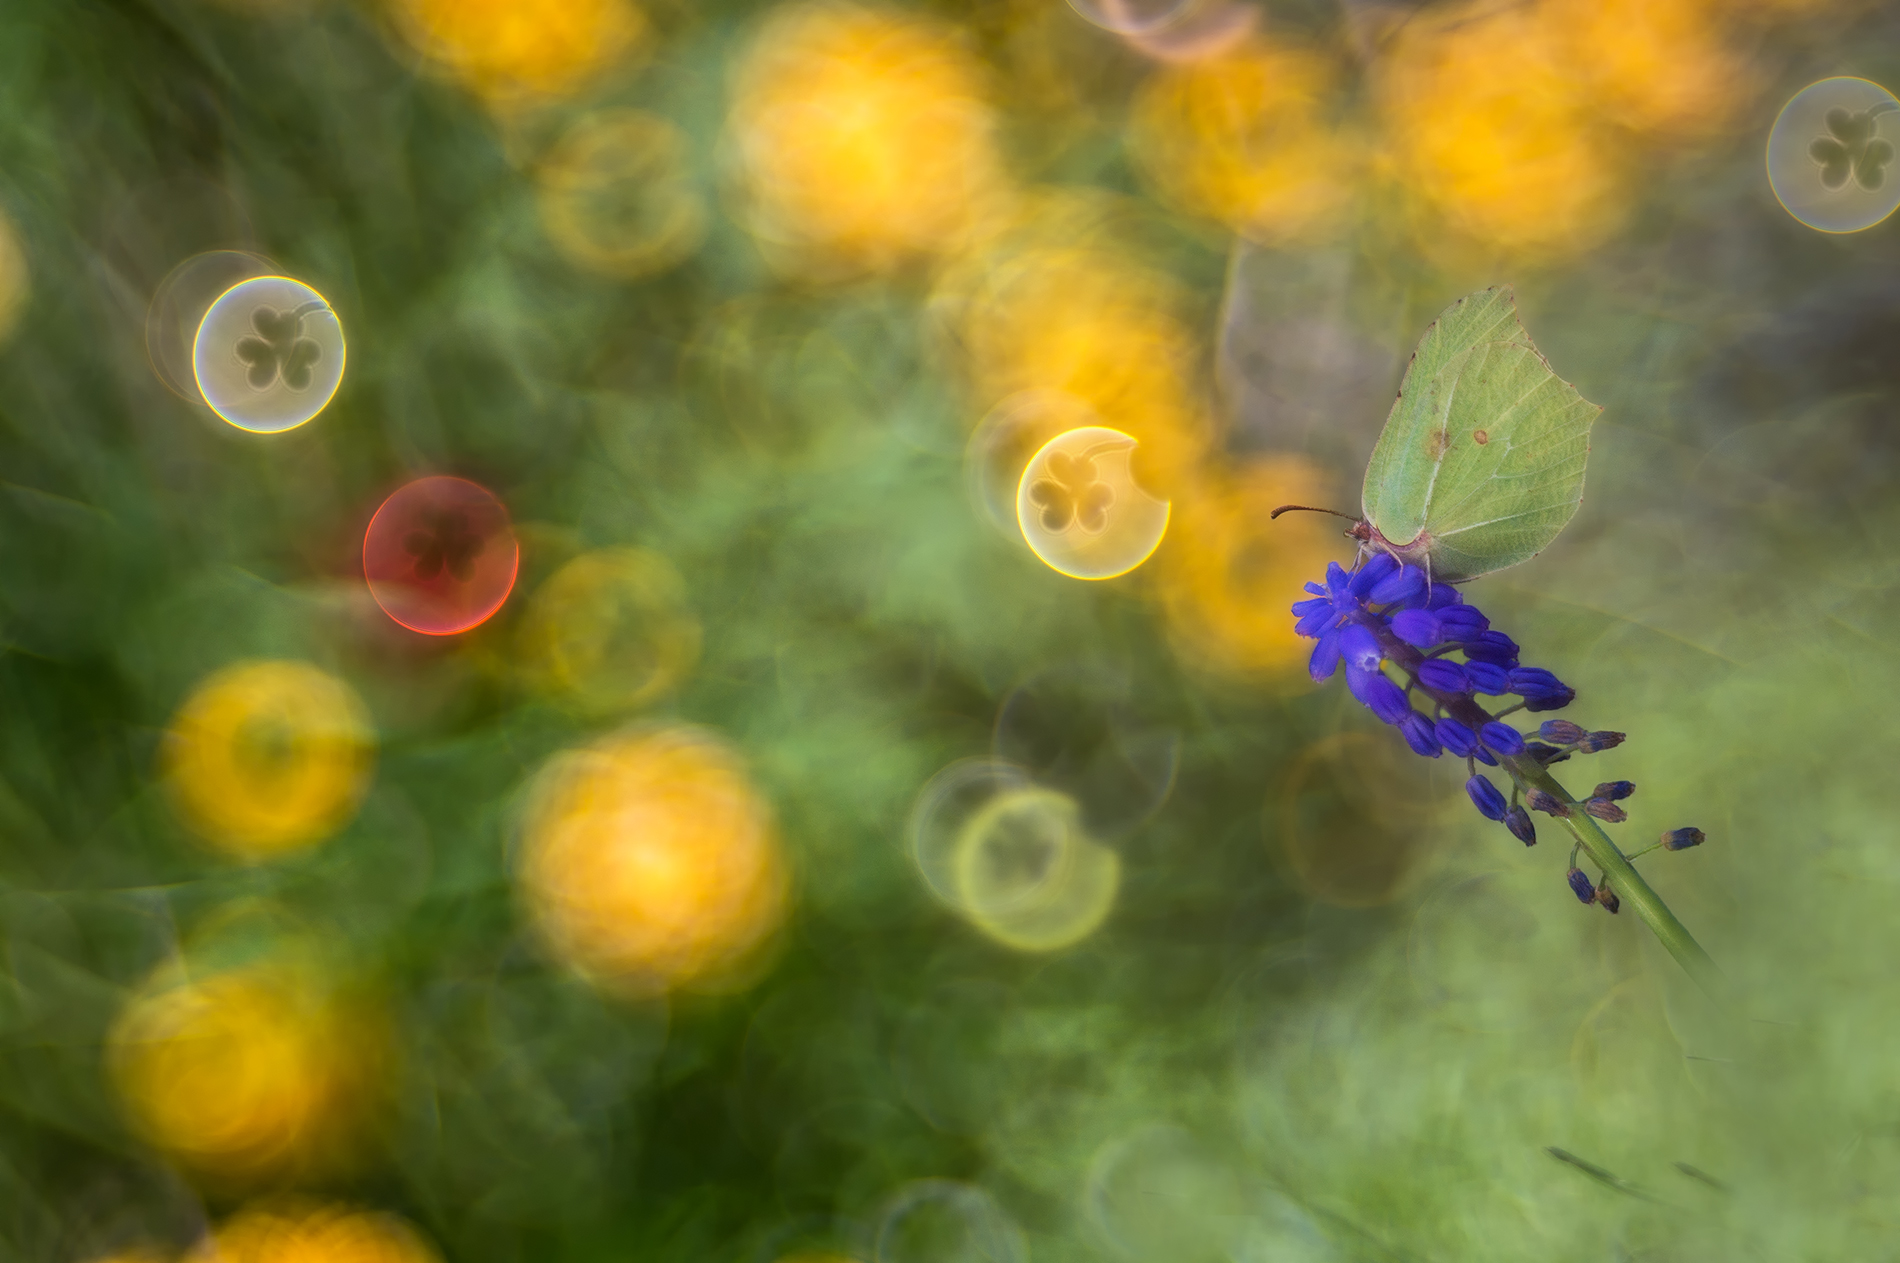 the clover - macro flare painting...